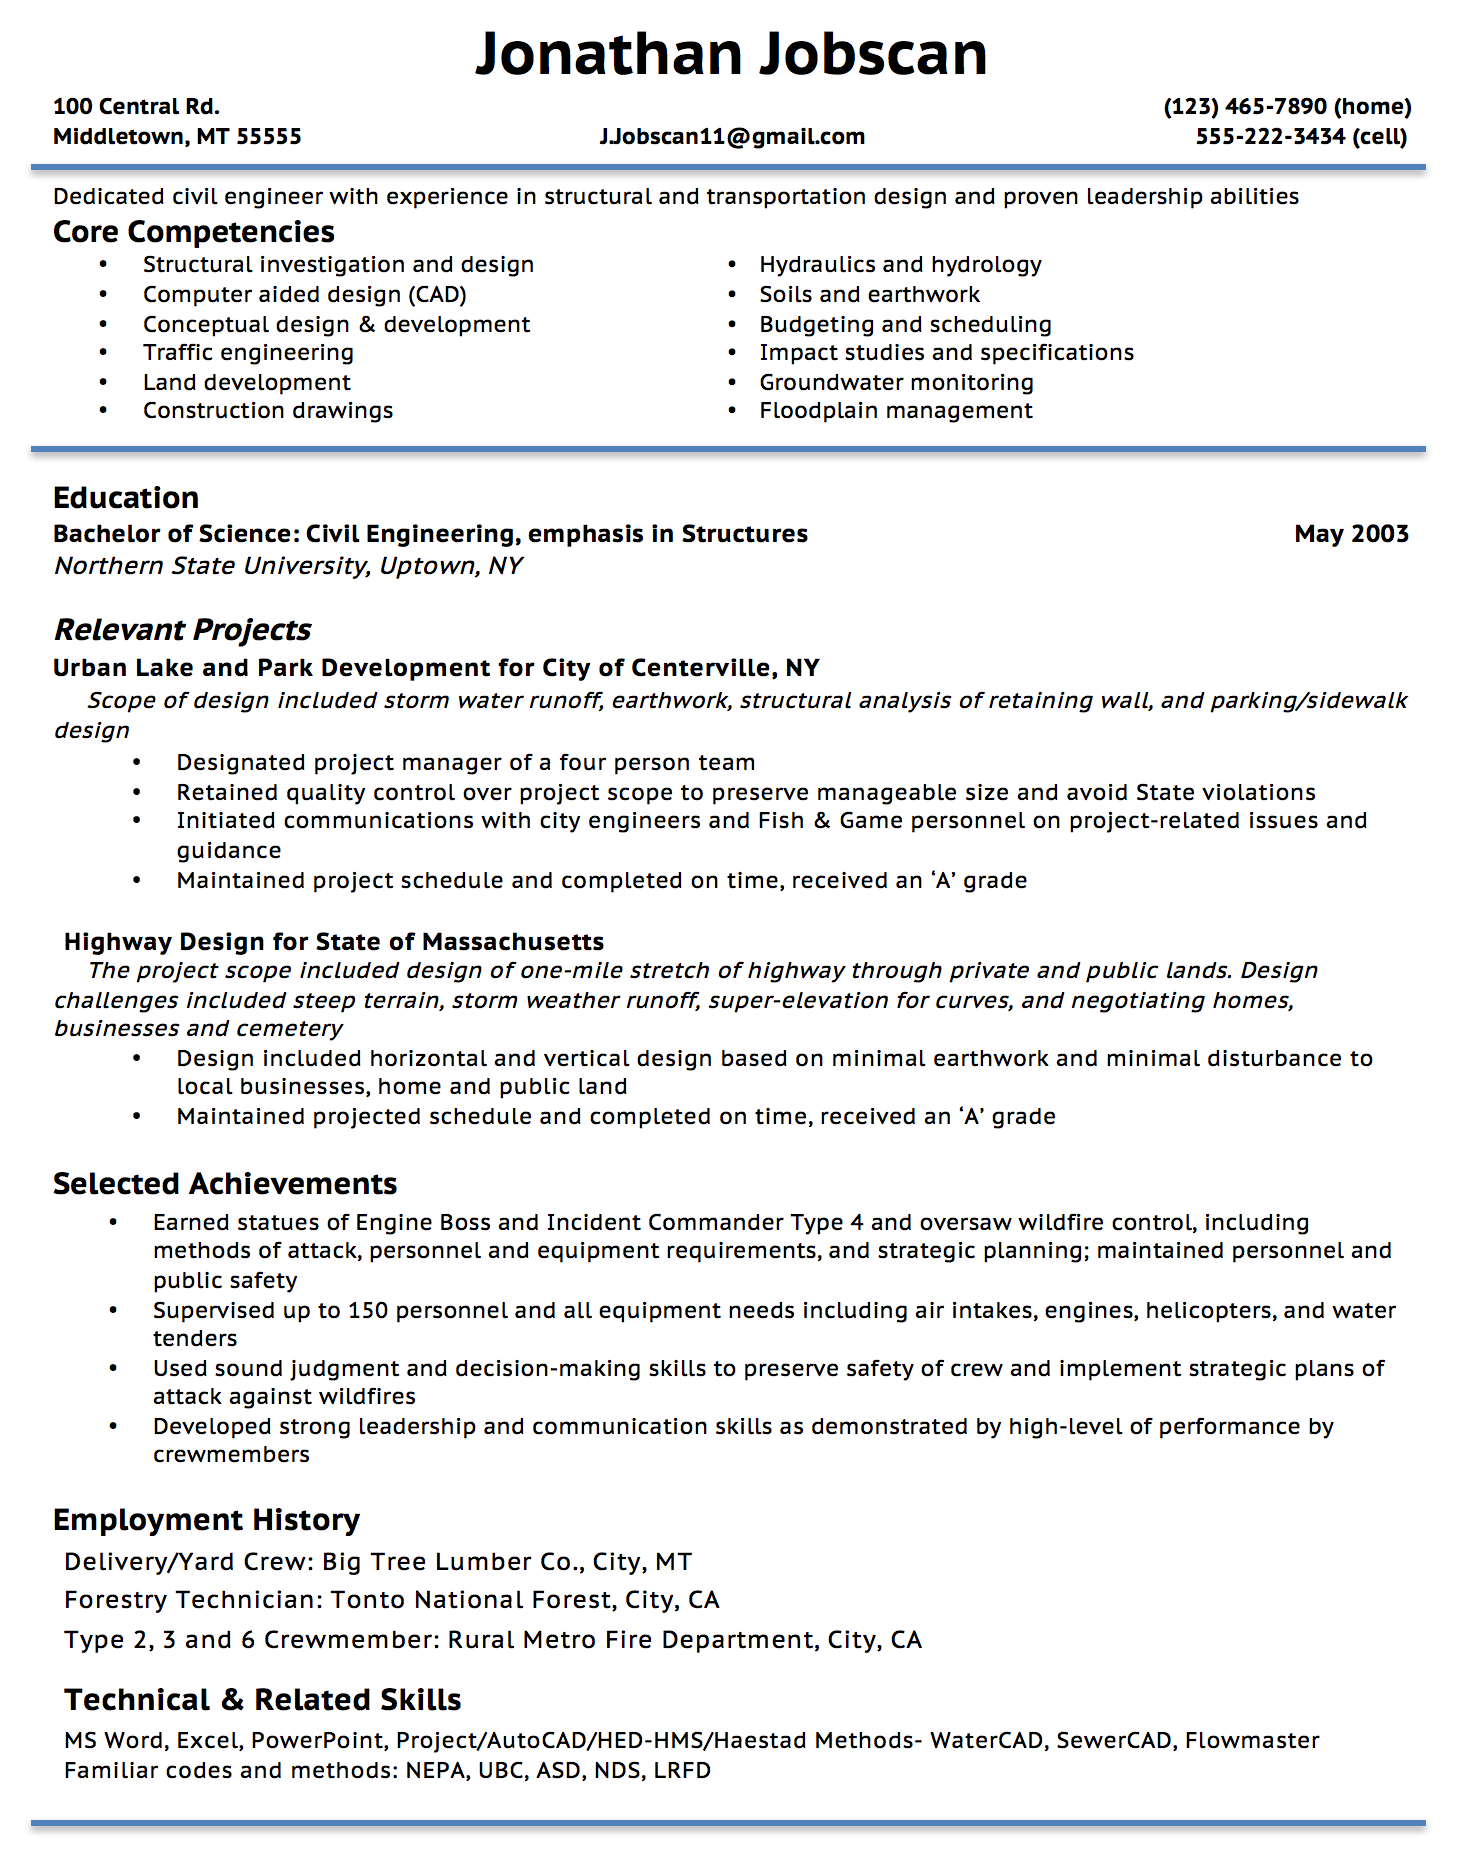 Opposenewapstandardsus  Surprising Resume Writing Guide  Jobscan With Fair Example Of A Functional Resume Format With Archaic High School Resume Template Microsoft Word Also Unc Optimal Resume In Addition Wardrobe Stylist Resume And Adobe Indesign Resume Template As Well As Keys To A Good Resume Additionally How To Write An Impressive Resume From Jobscanco With Opposenewapstandardsus  Fair Resume Writing Guide  Jobscan With Archaic Example Of A Functional Resume Format And Surprising High School Resume Template Microsoft Word Also Unc Optimal Resume In Addition Wardrobe Stylist Resume From Jobscanco